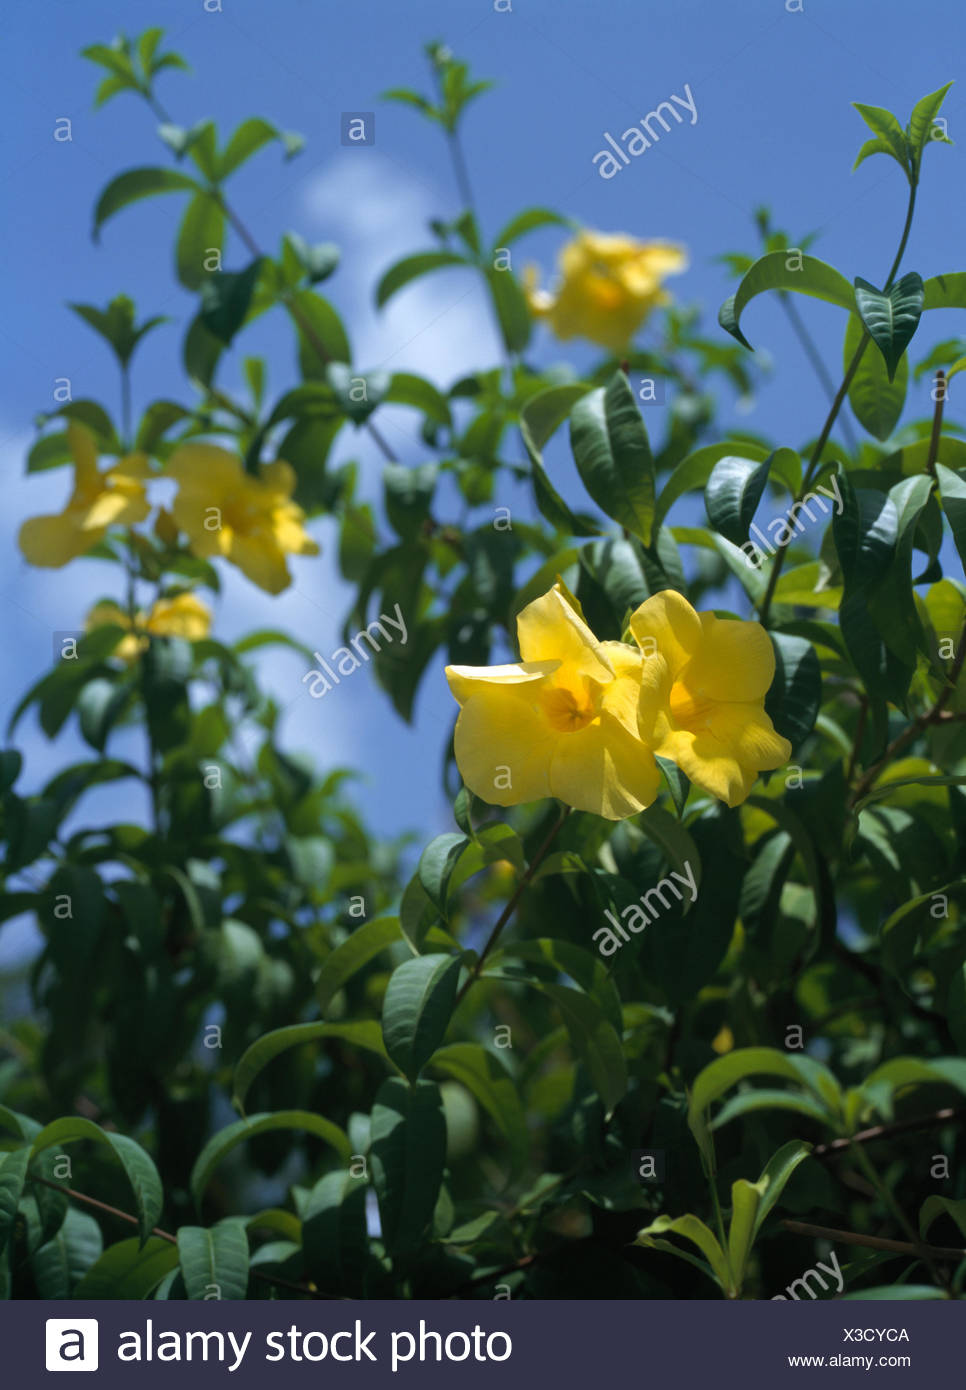 Close Up Of The Yellow Flowers Of An Exotic Shrub Stock Photo